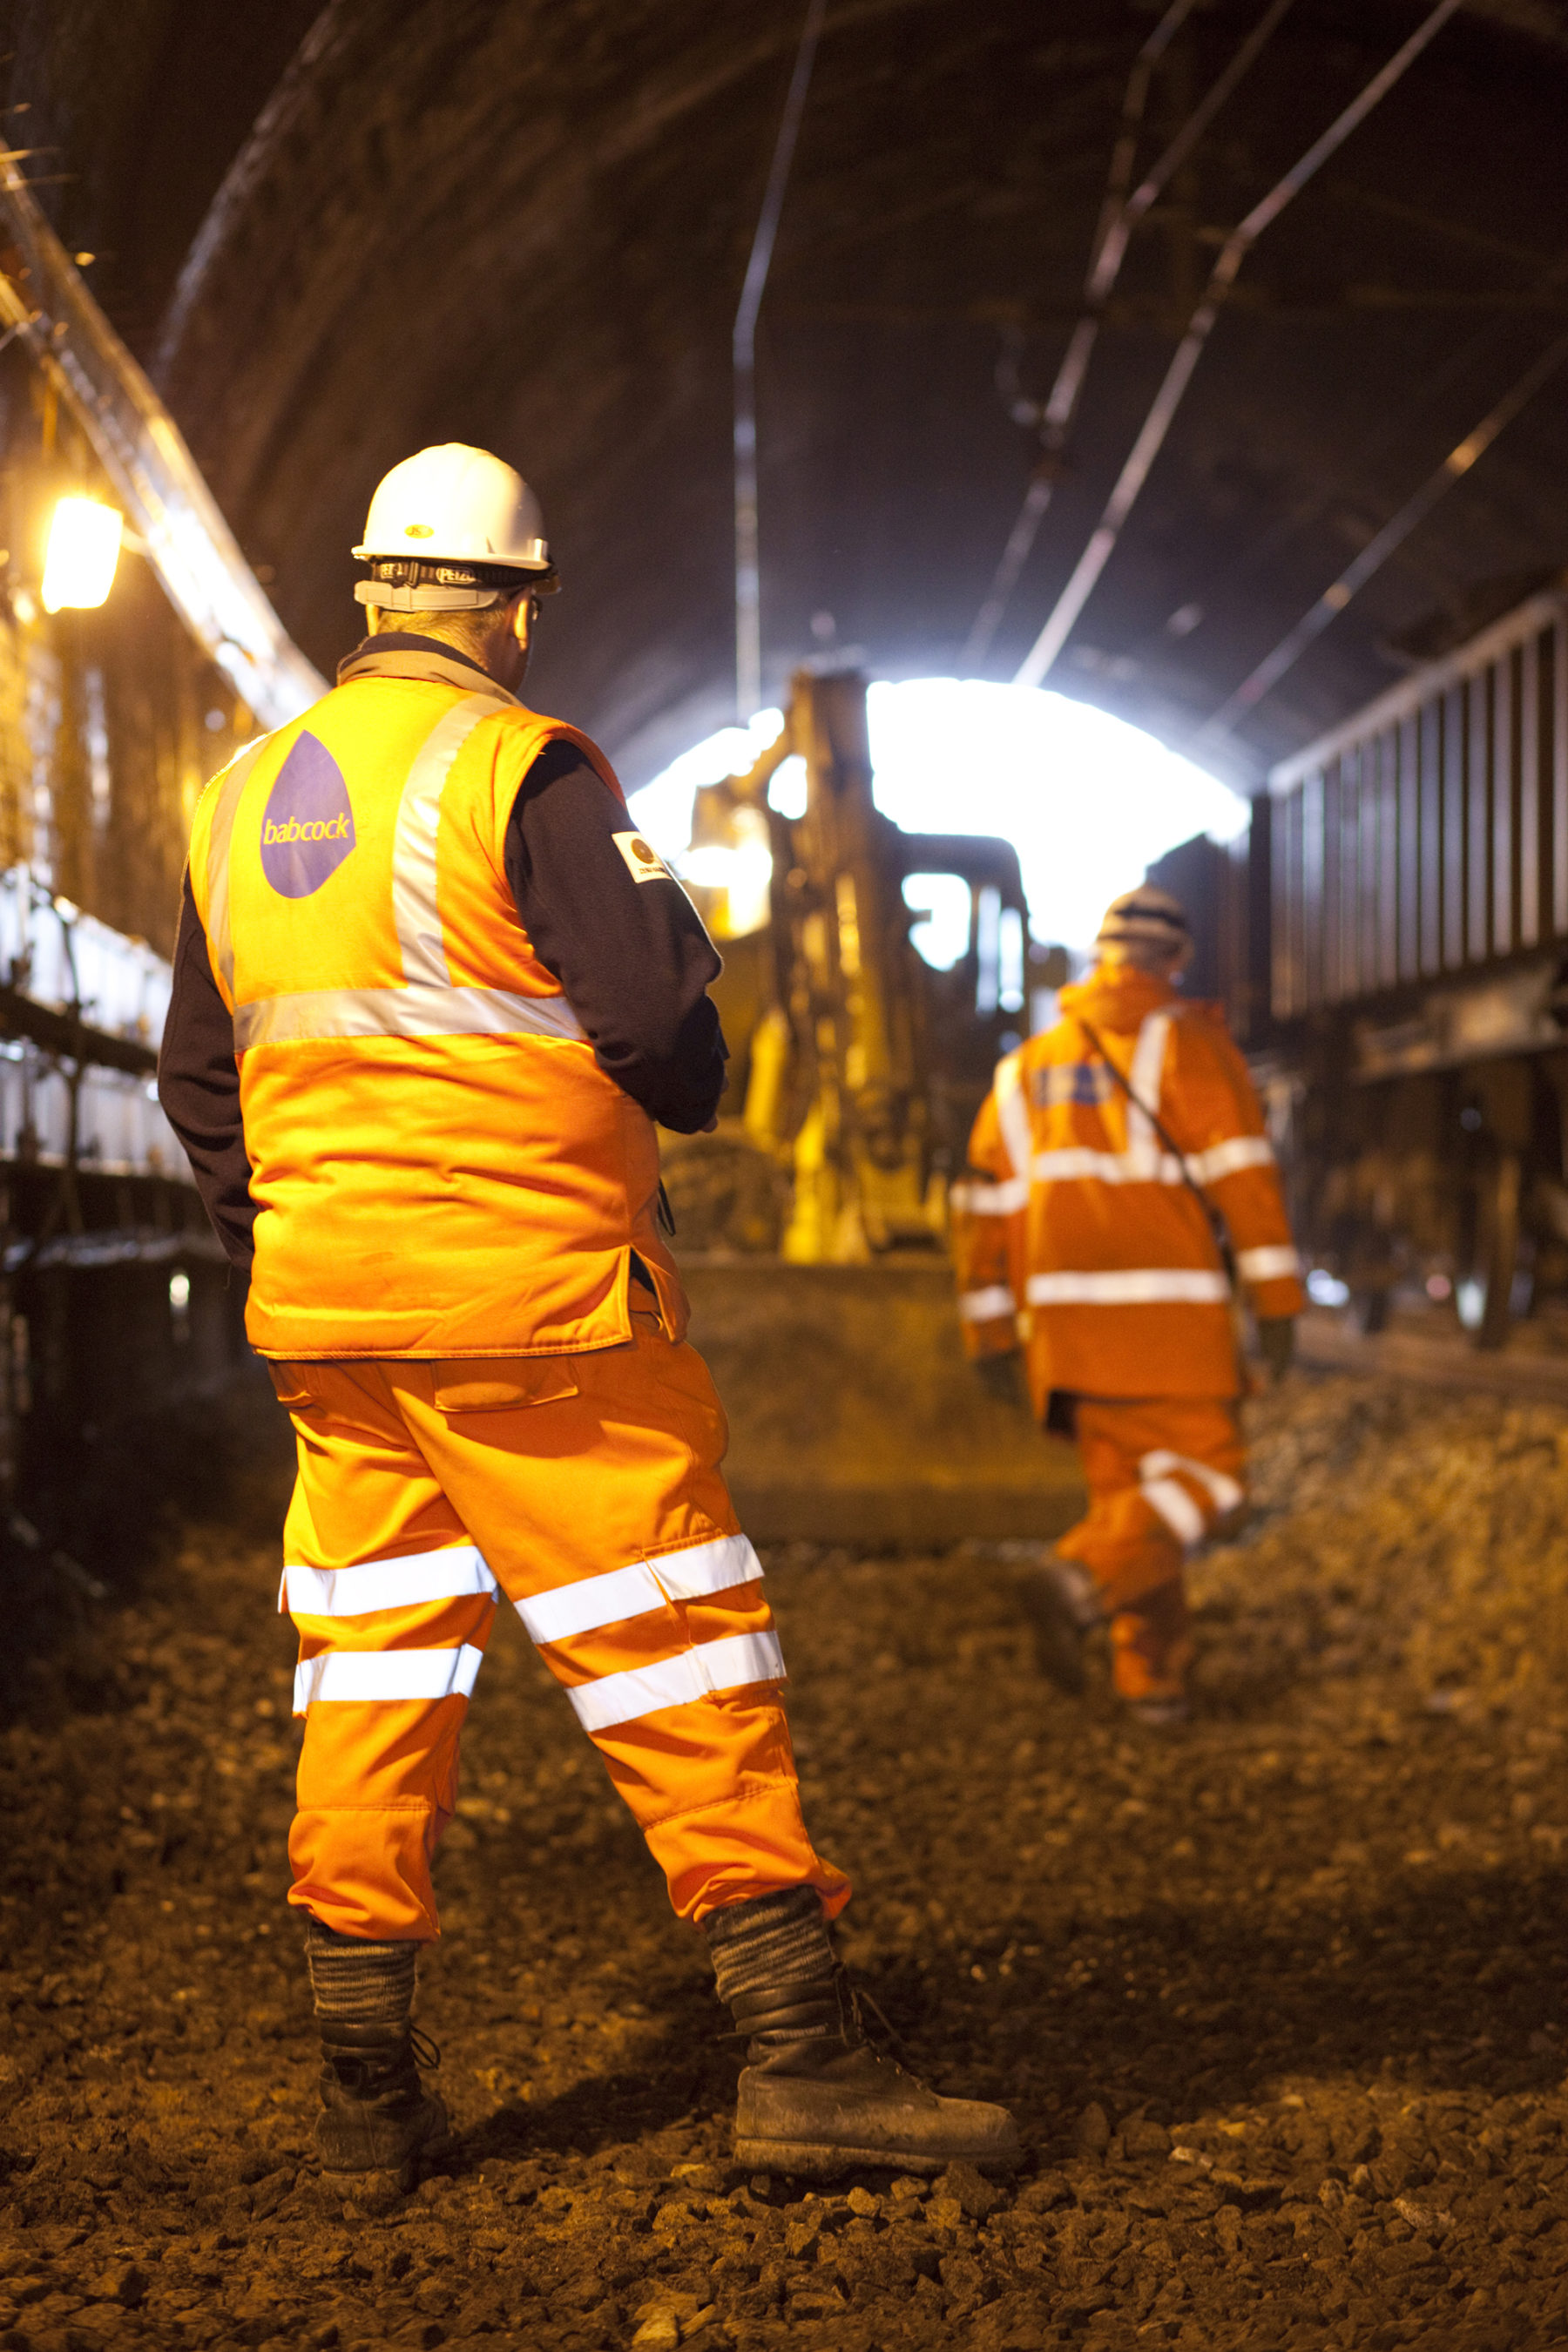 Engineer and contractor planning railway repairs